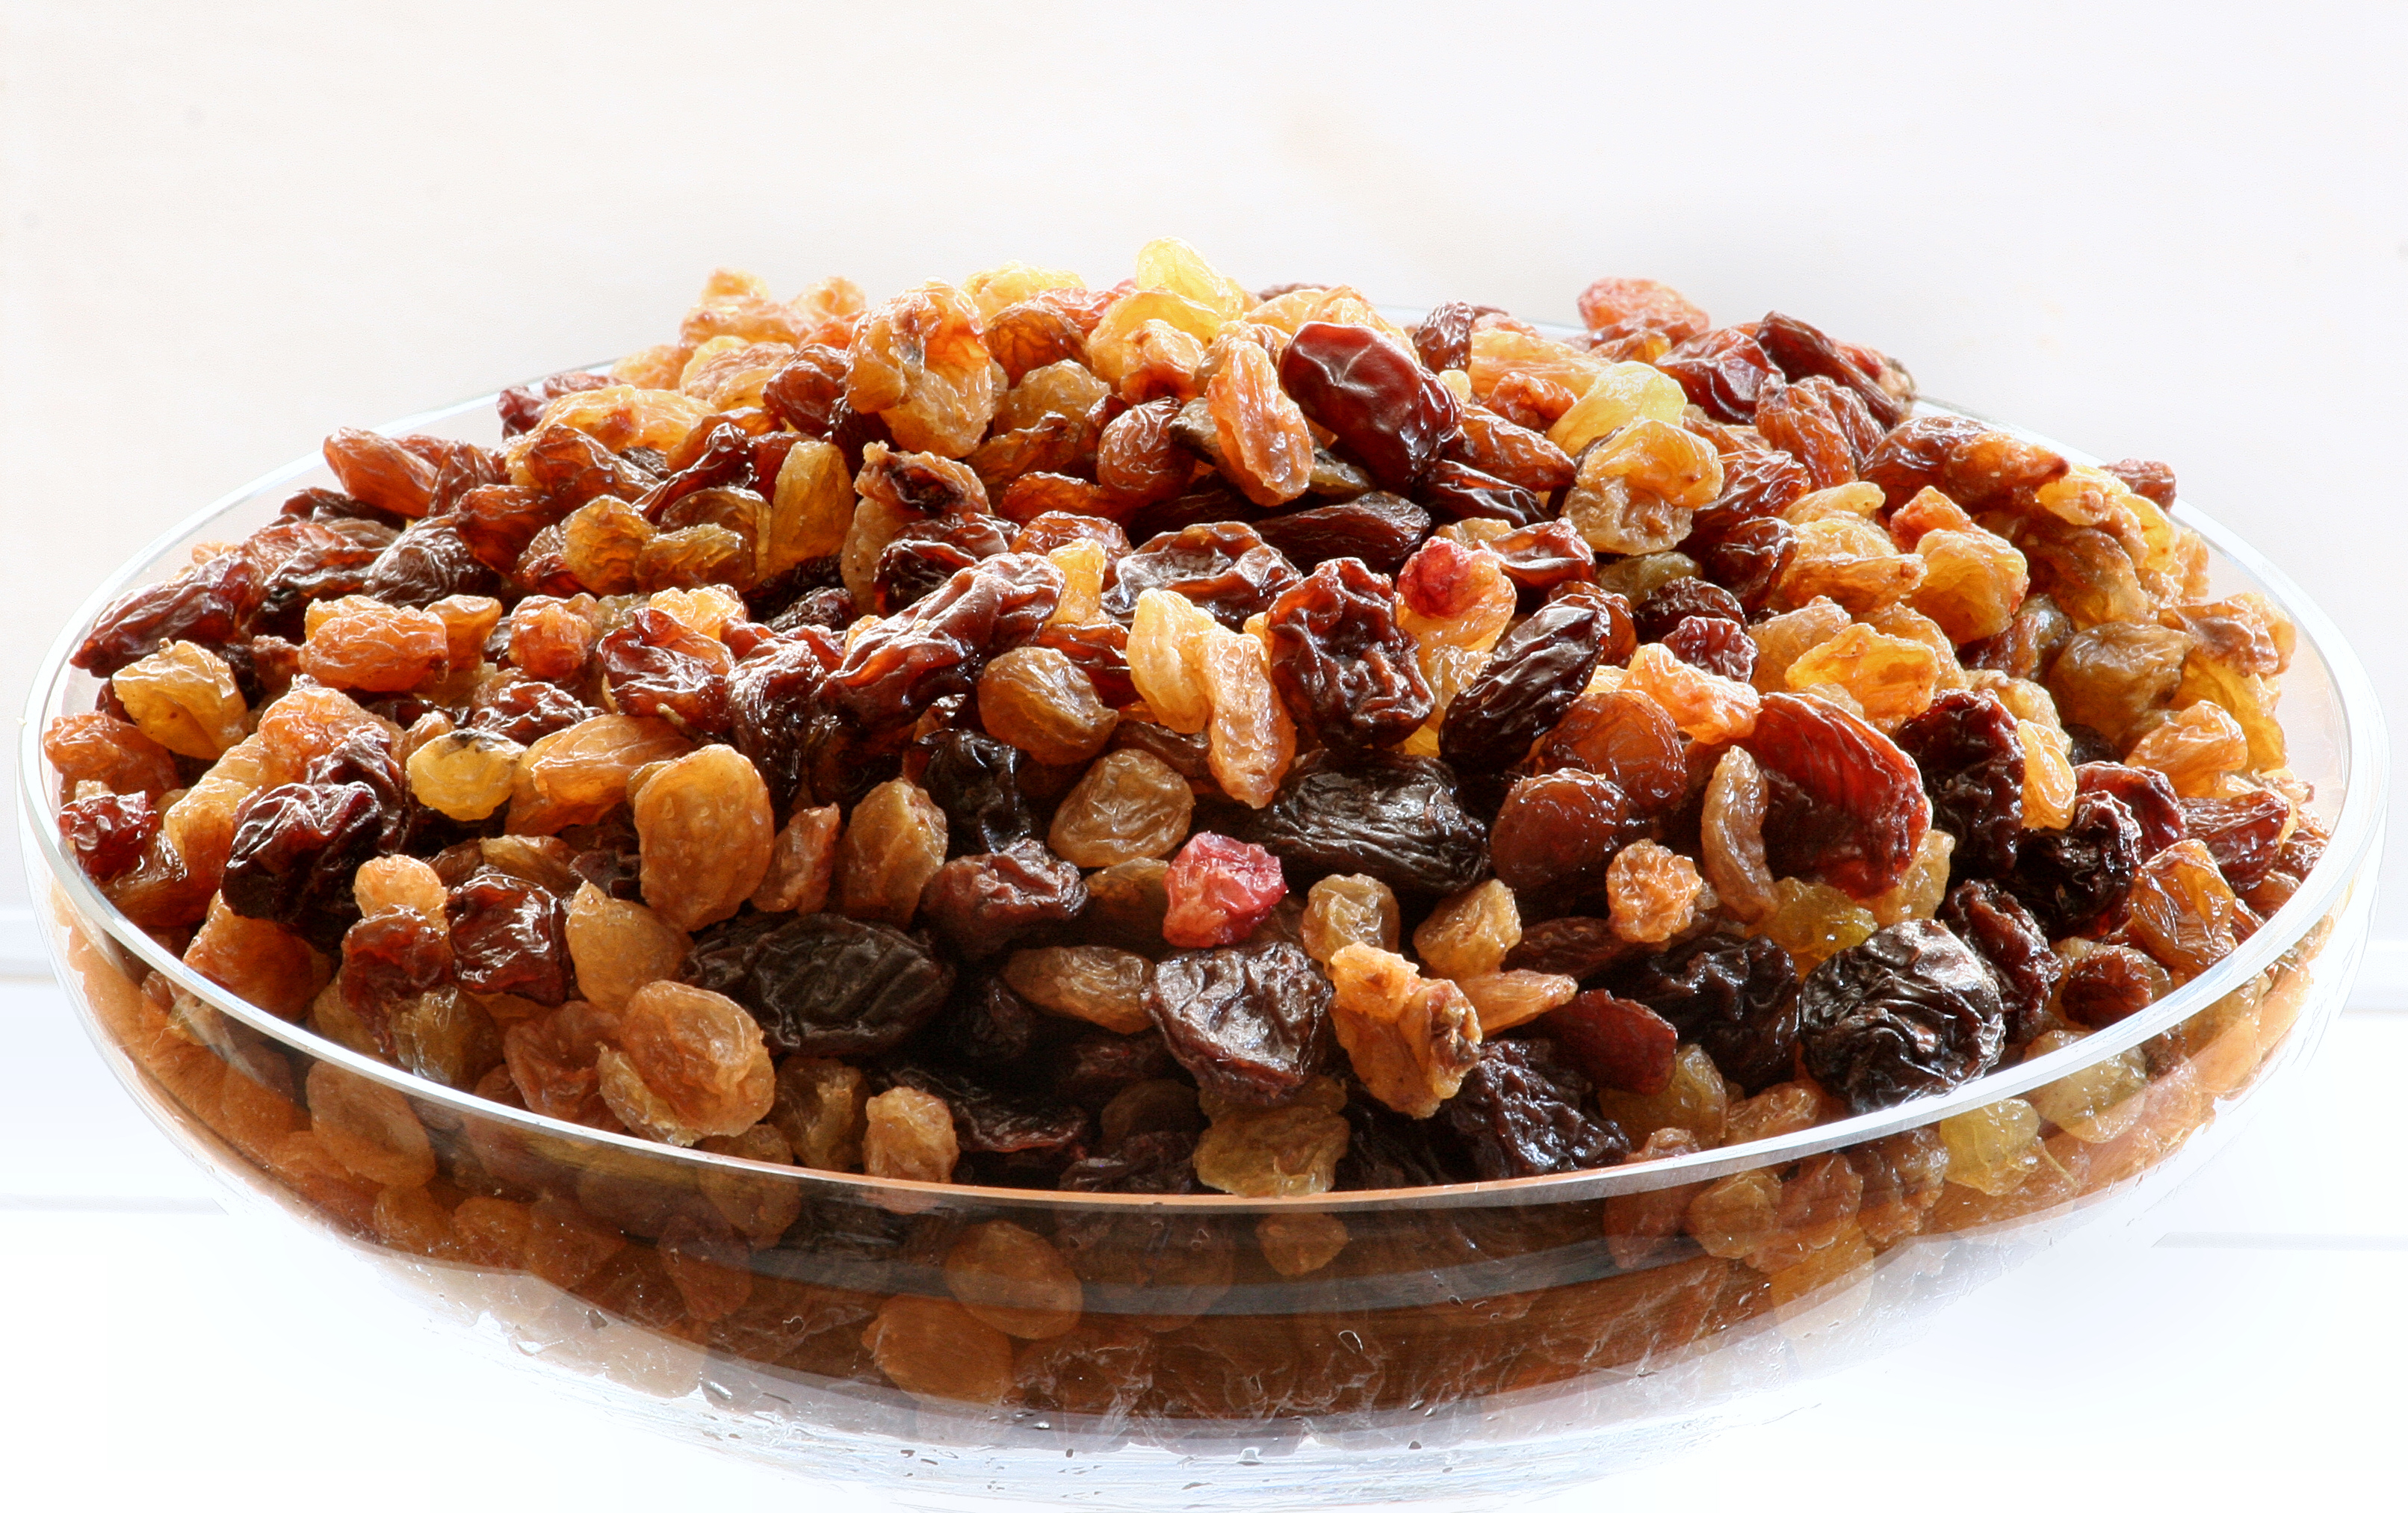 raisins for nutrition energy training for ironman triathlon workouts racing energy as effective gels chews